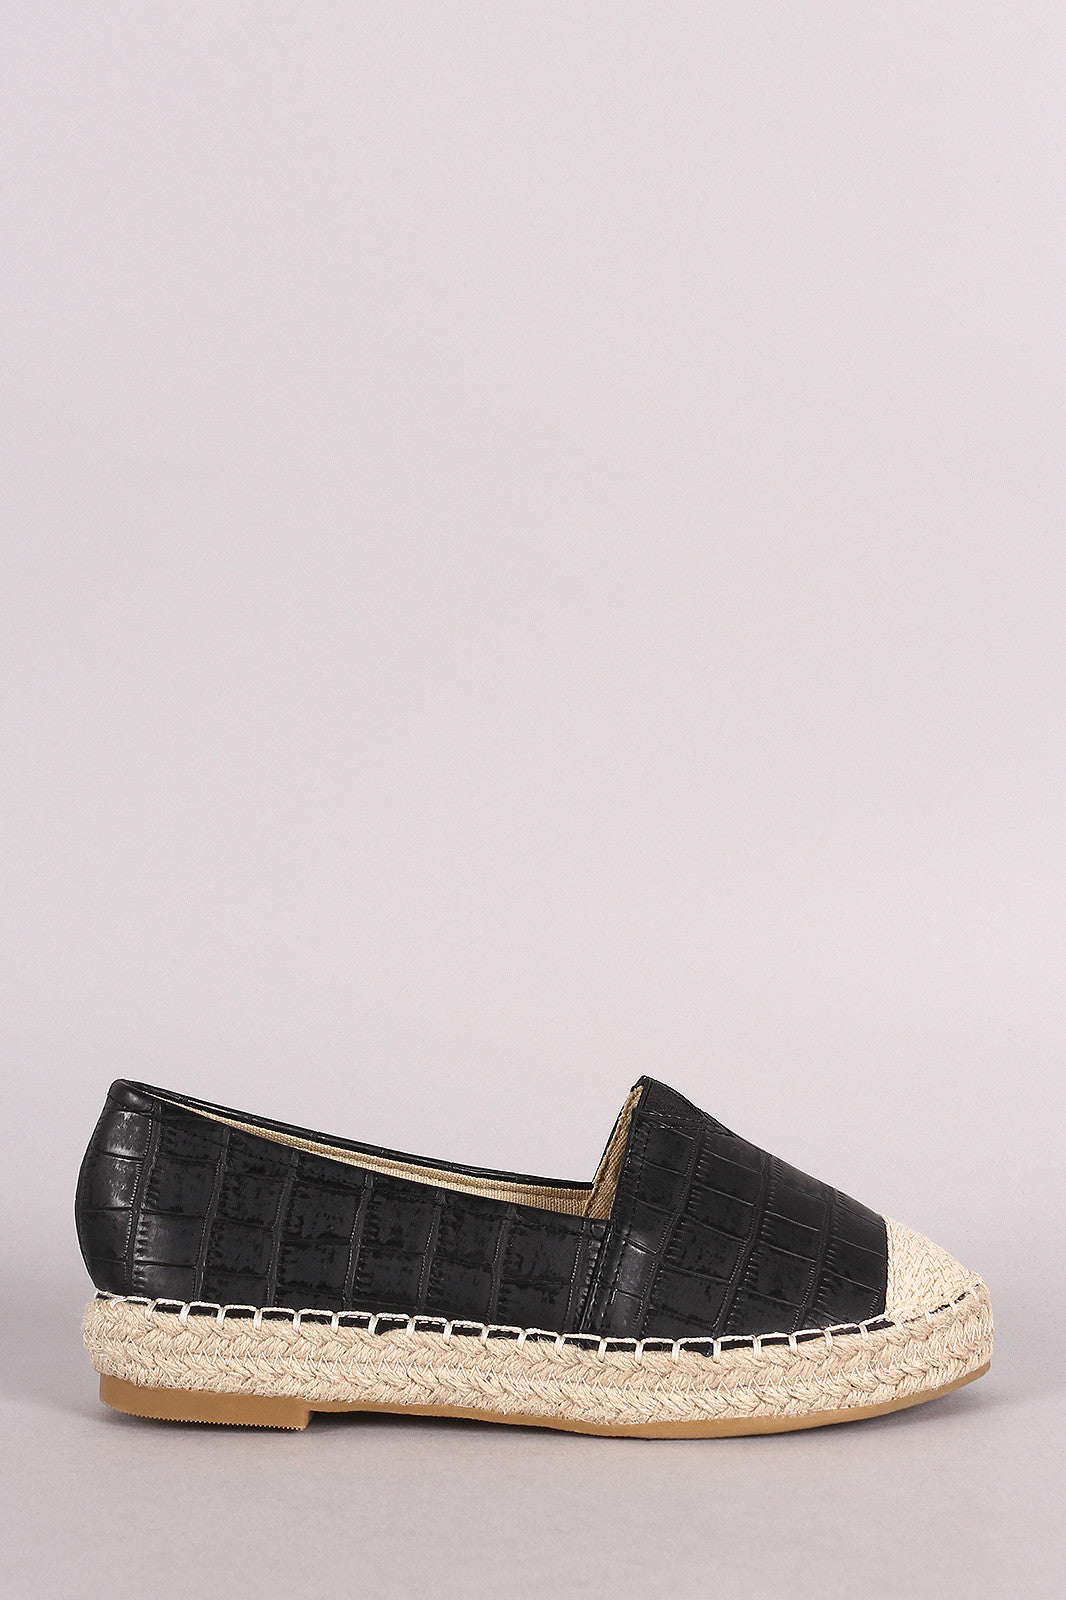 Crocodile Print Braided Espadrille Slip On Loafer Flat - Thick 'N' Curvy Shop - 1